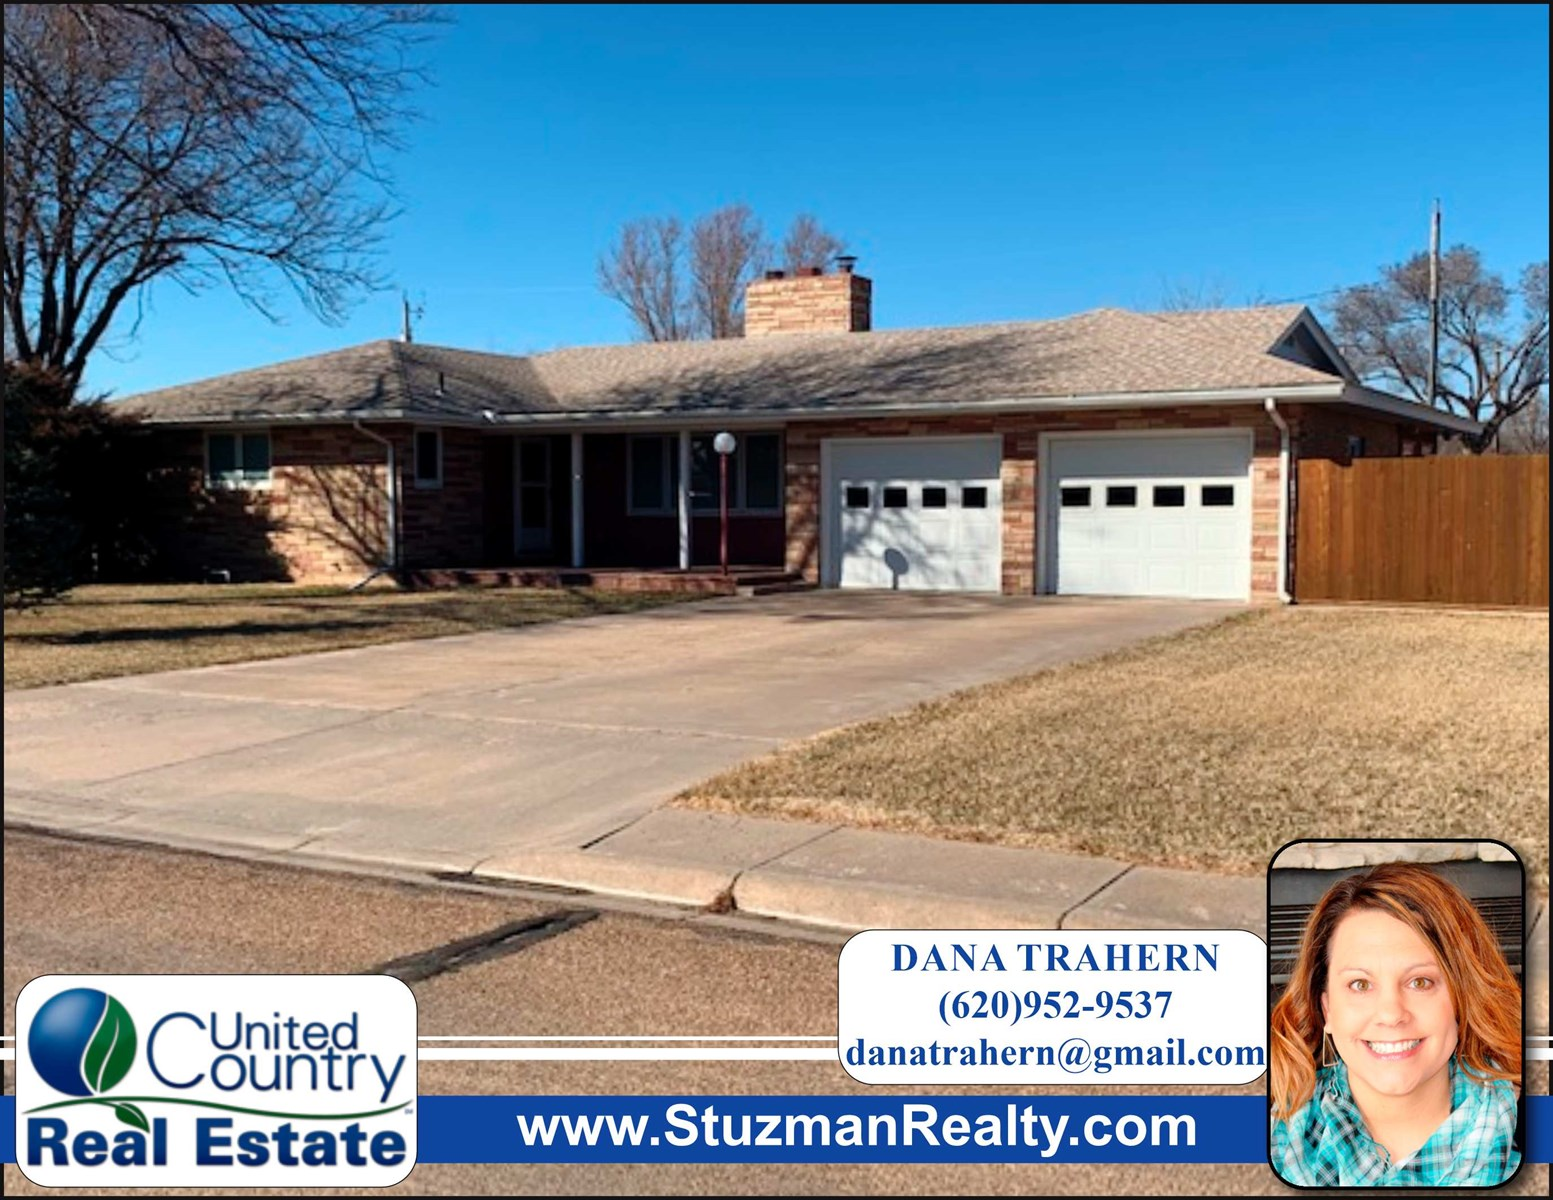 VERY SPACIOUS HOME FOR SALE IN HASKELL COUNTY, KS